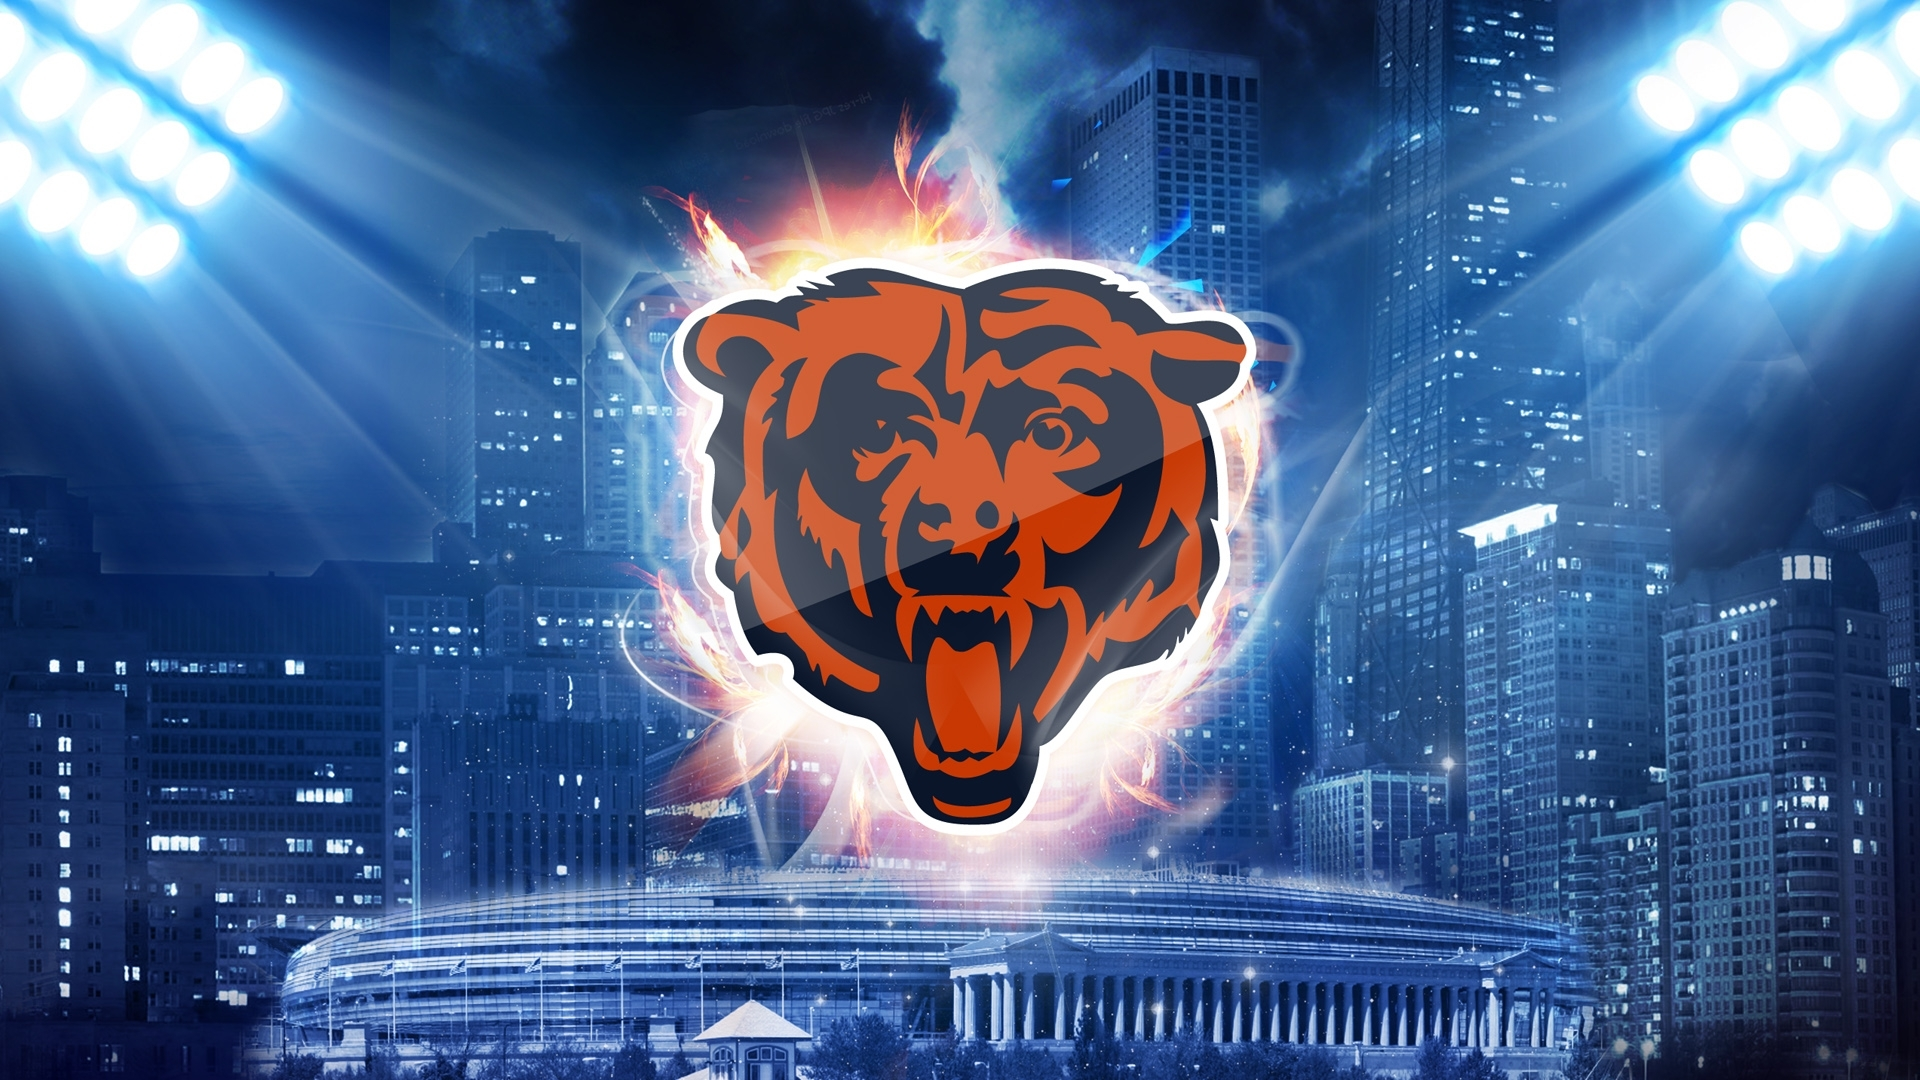 chicago bears desktop wallpaper 52903 1920x1080 px ~ hdwallsource